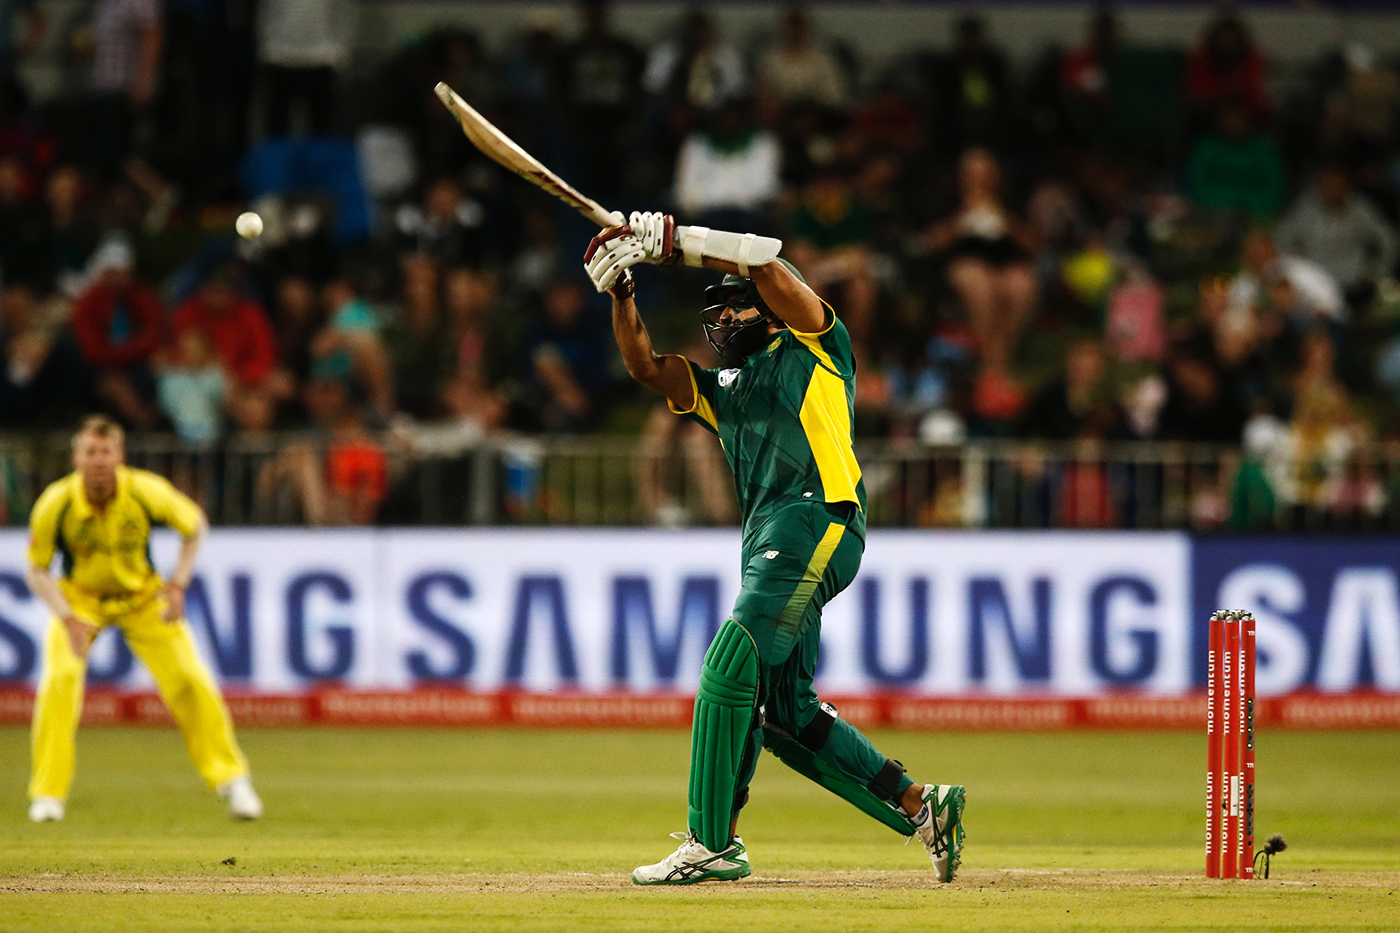 Hash > Viv? Amla holds the ODI records for being the fastest to 4000 runs and to 25 centuries